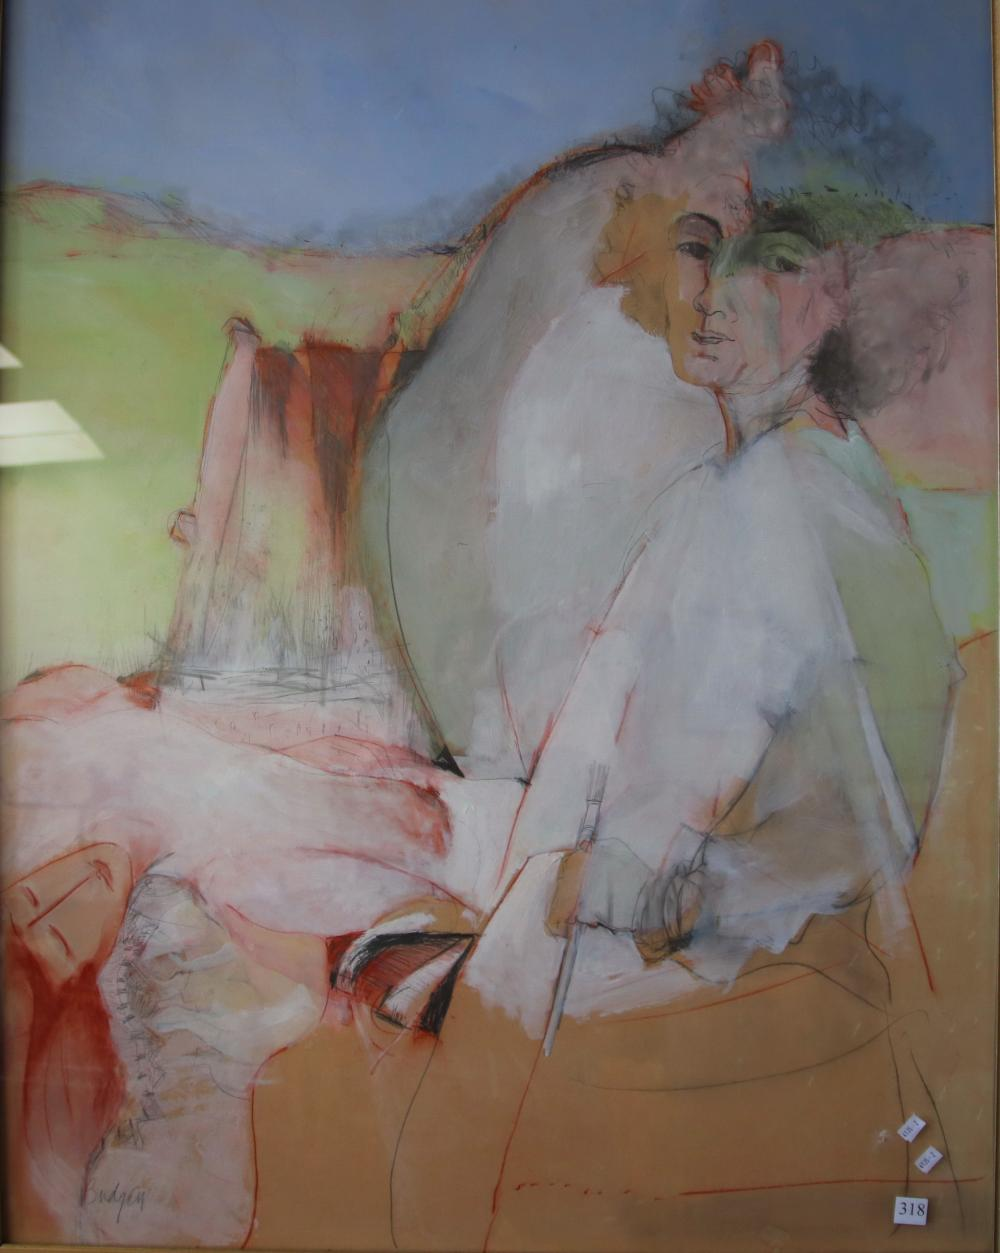 BEVERLEY BUDGEN THE PAINTER AND THE PAINTING C1980 PENCIL, PASTEL & ACRYLIC ON HARD BOARD 120 X 89.5